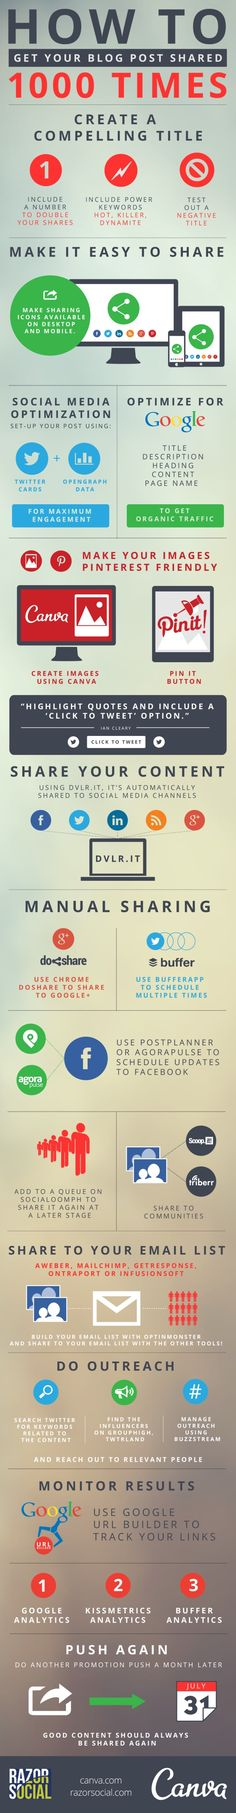 How to Get Your Blog Post Shared 1000 Times http://blog.canva.com/get-blog-post-shared-1000-times/